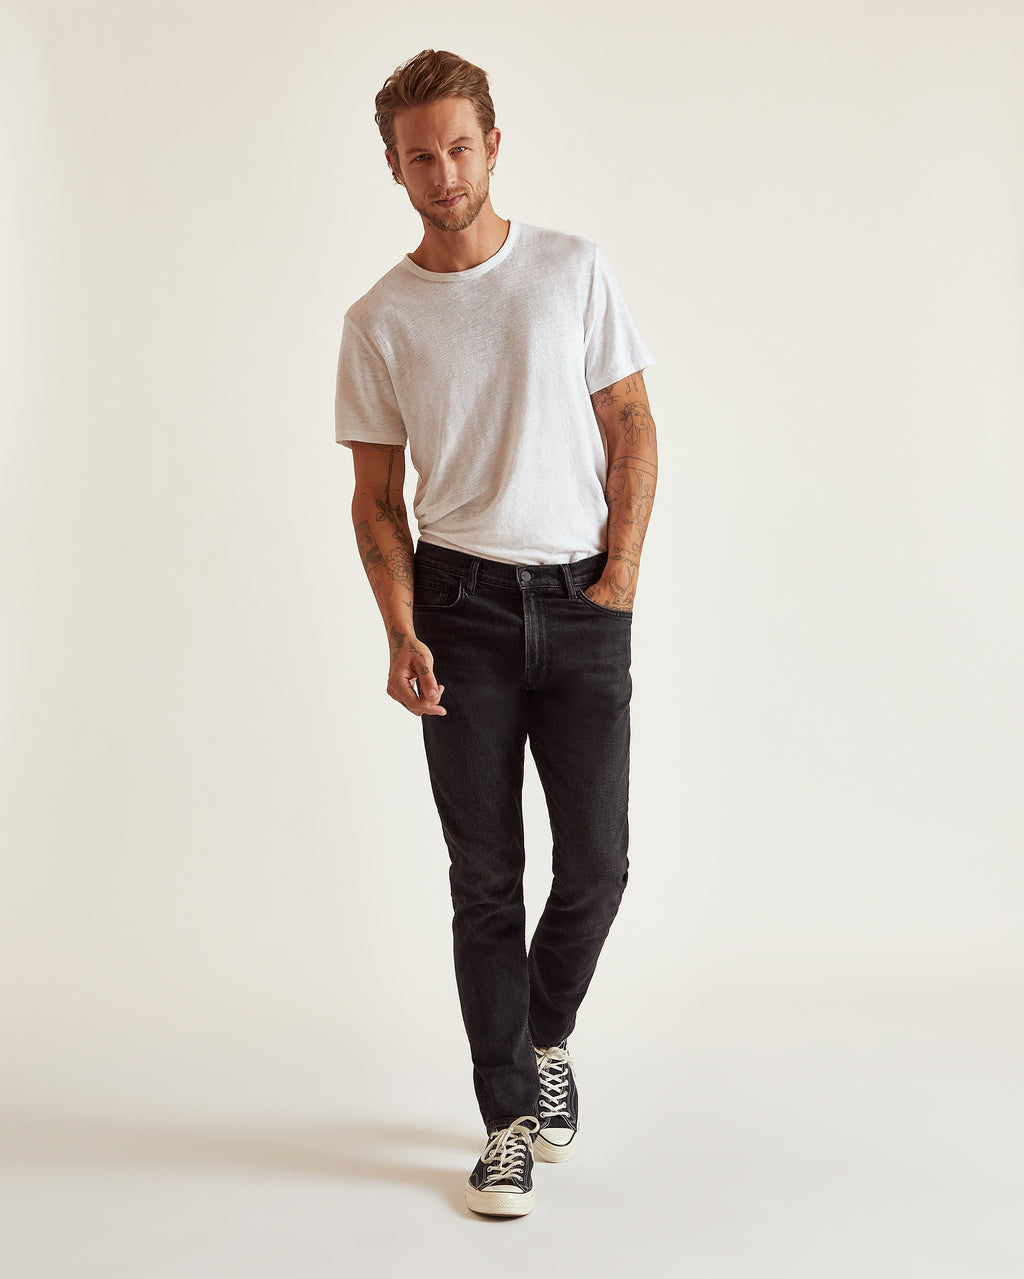 The Modern Skinny Jean in Washed Black